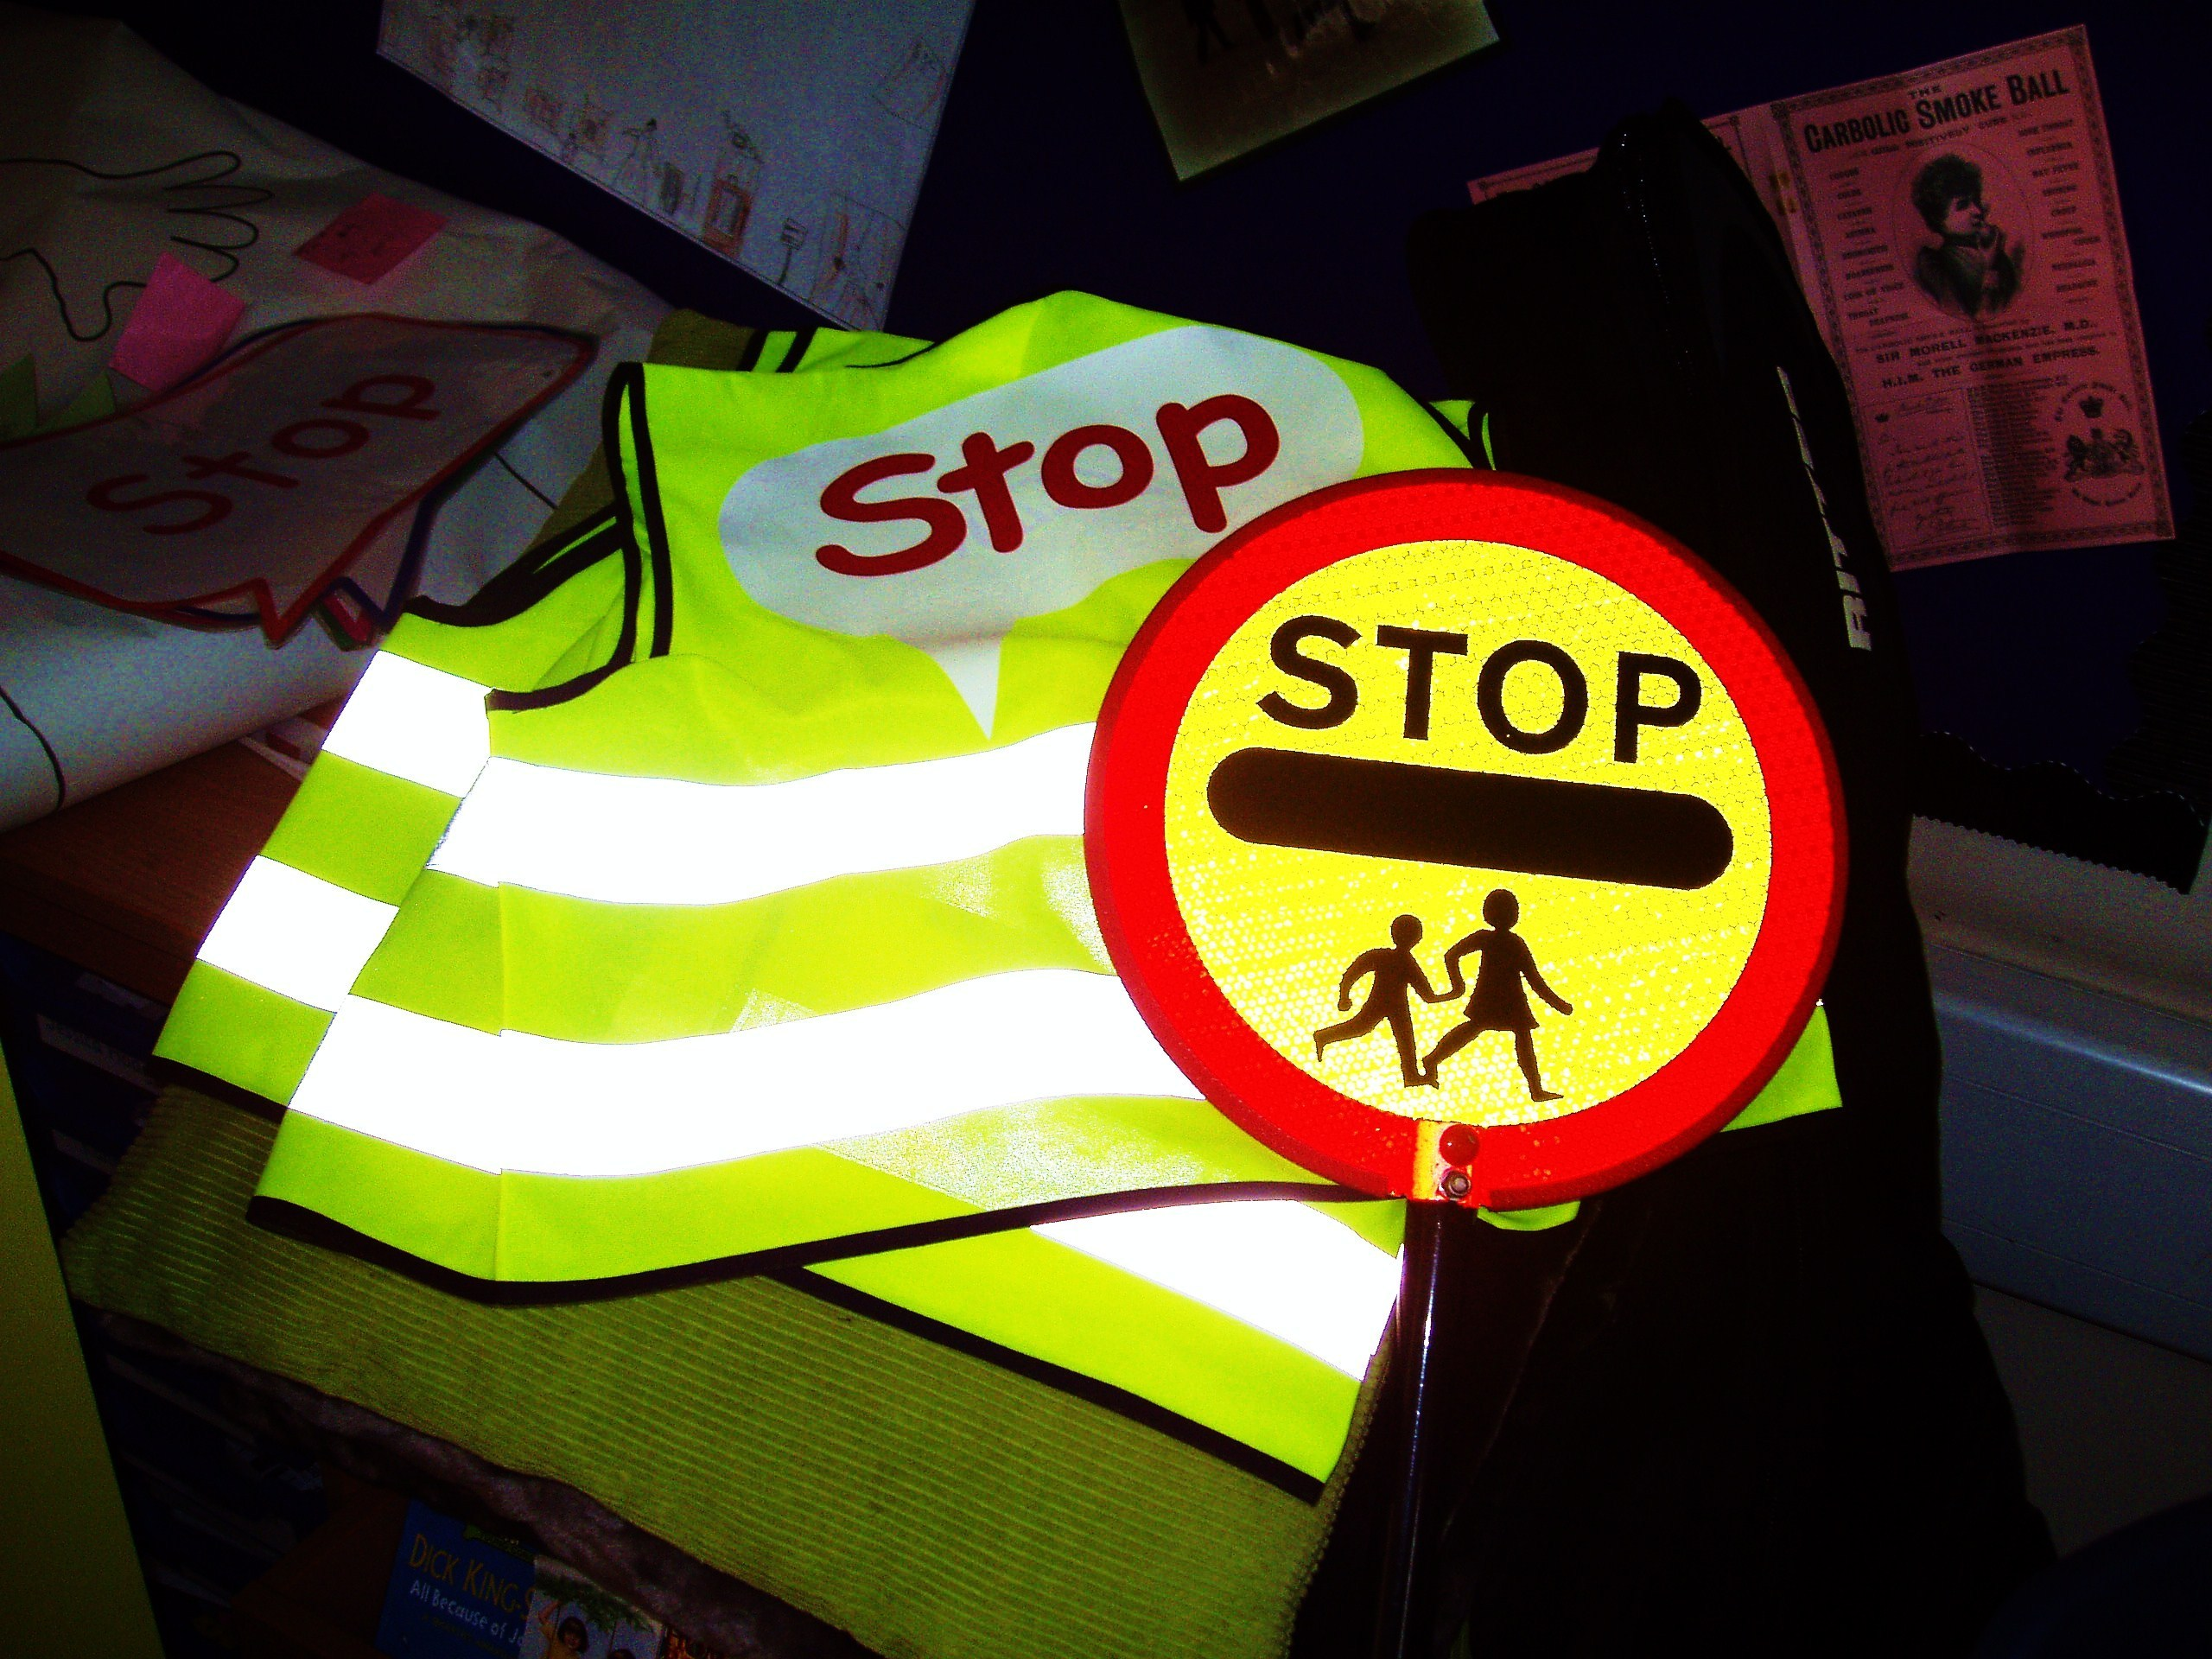 Teaching Road Safety Through Poetry